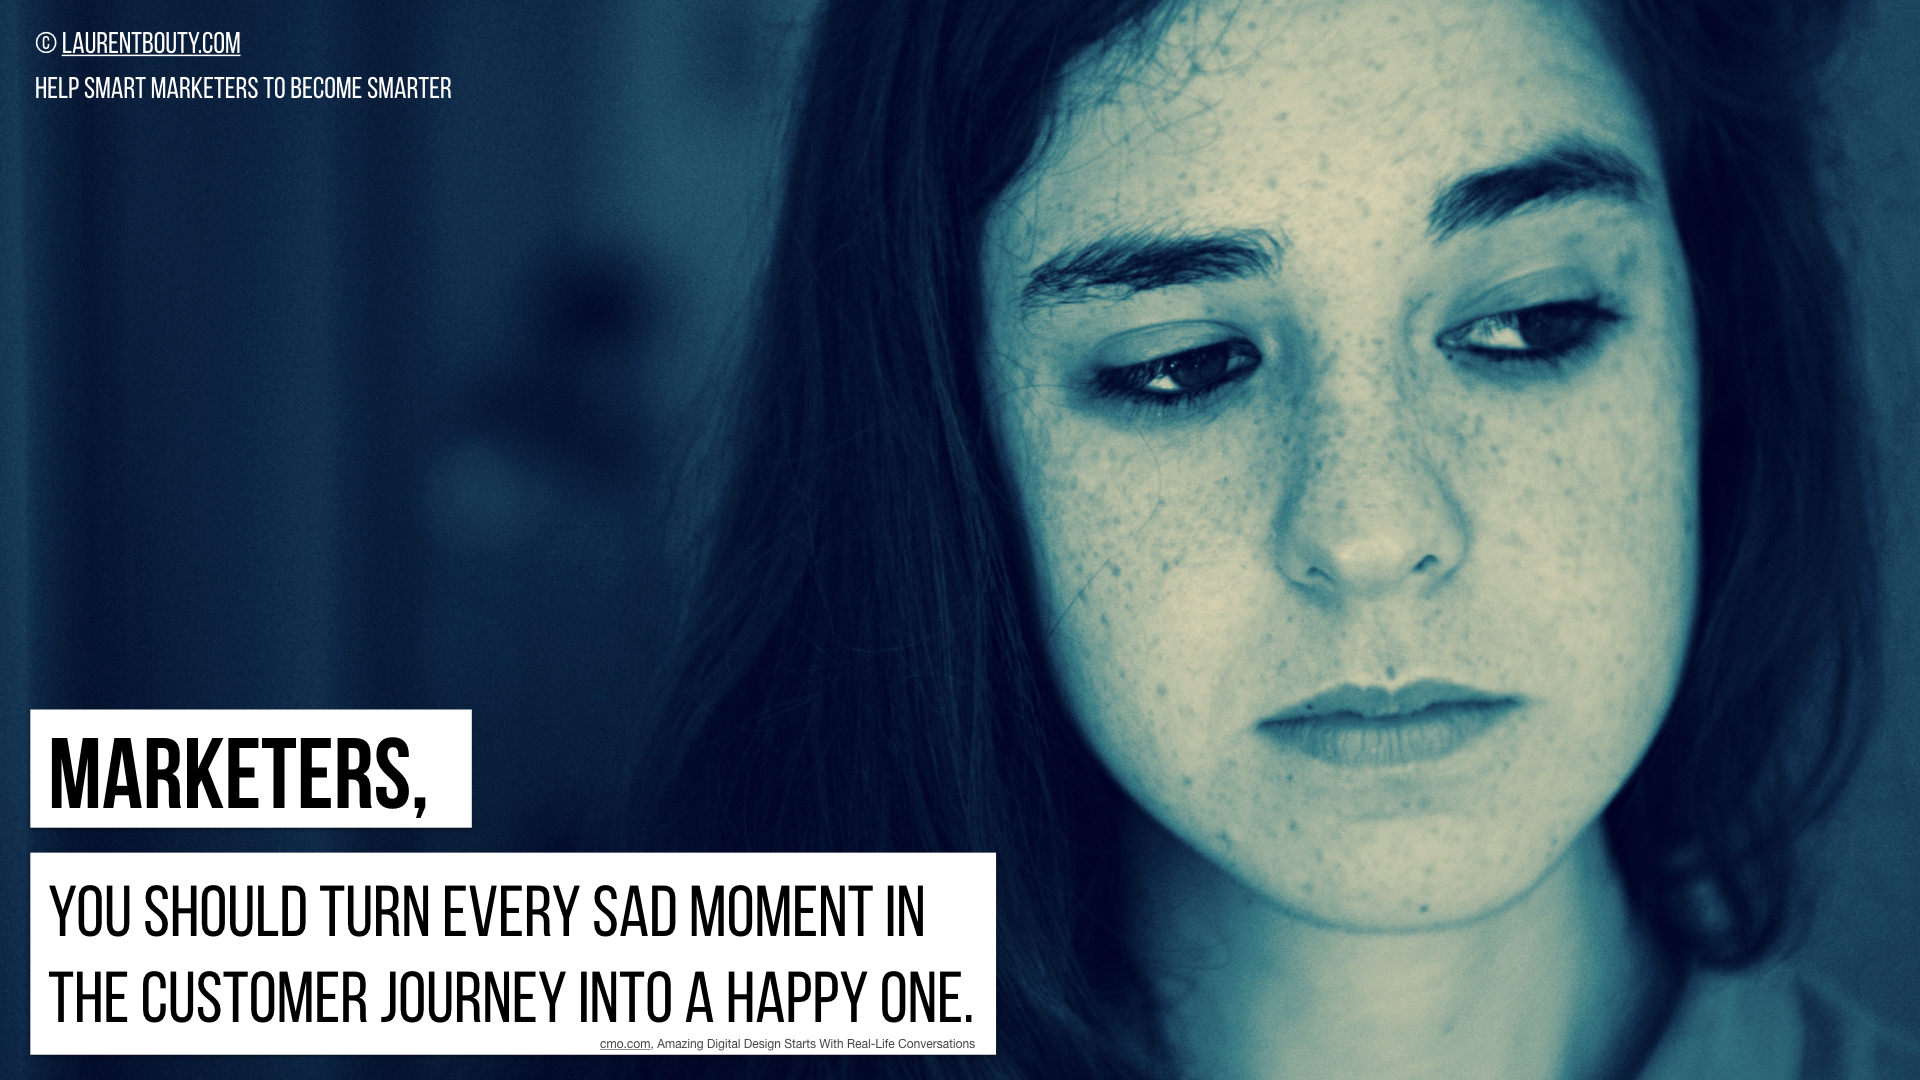 Marketers, You Should Turn Each Sad Moments Into a Happy One